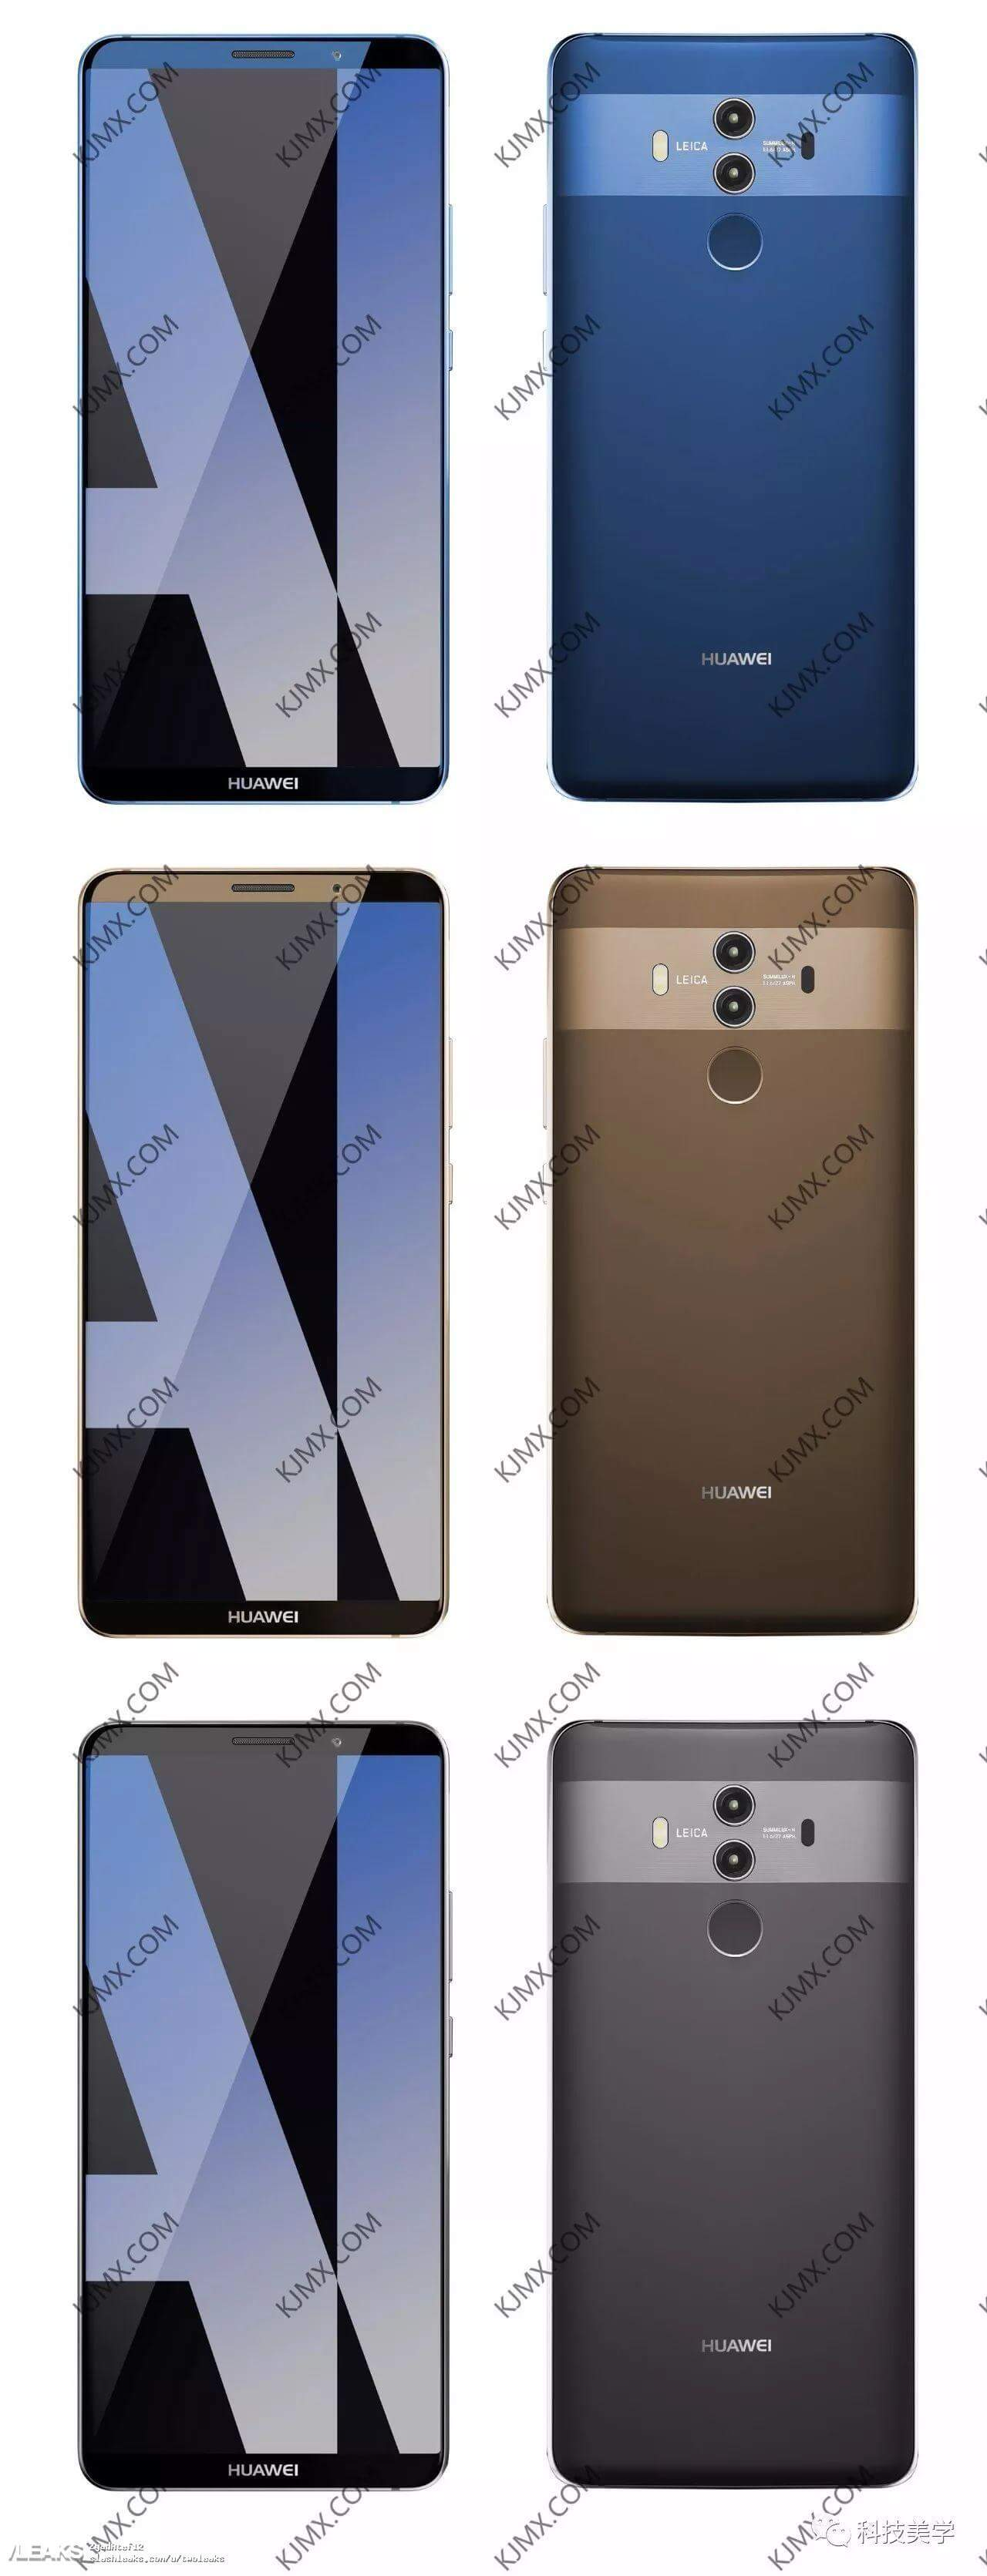 Huawei Mate 10 Pro Android Smartphone